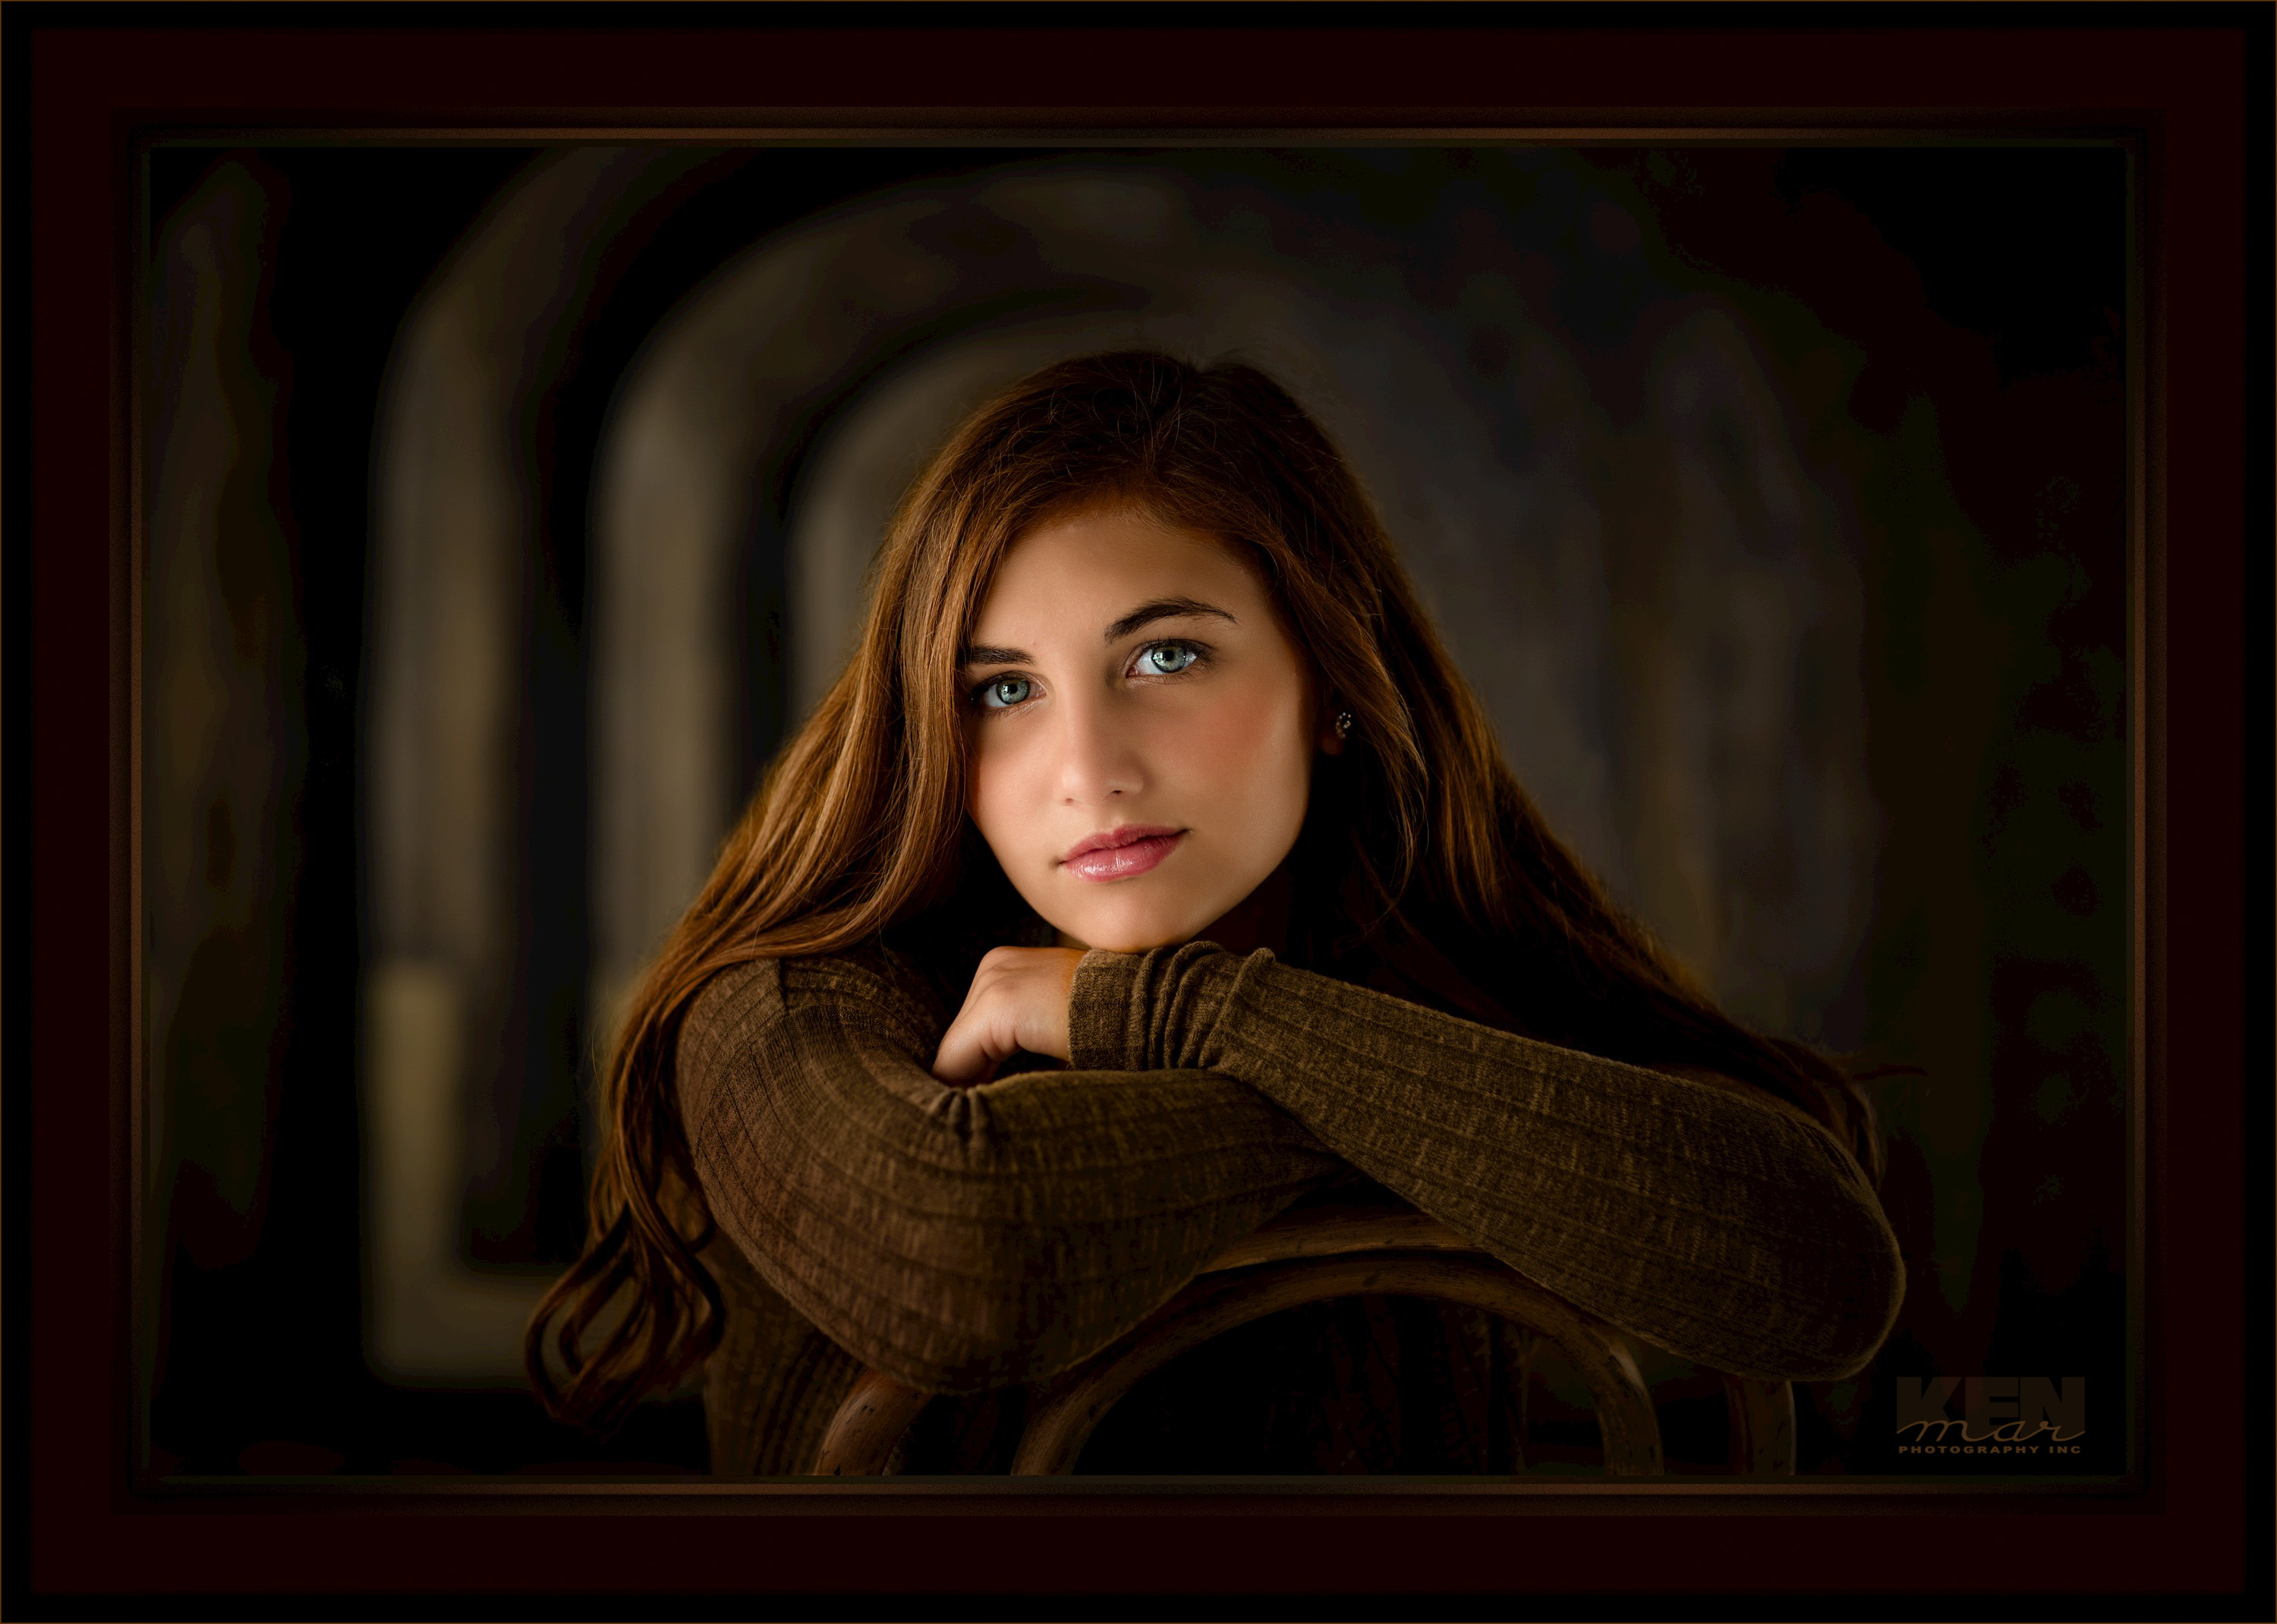 Part of a gallery of high school senior images by KenMar